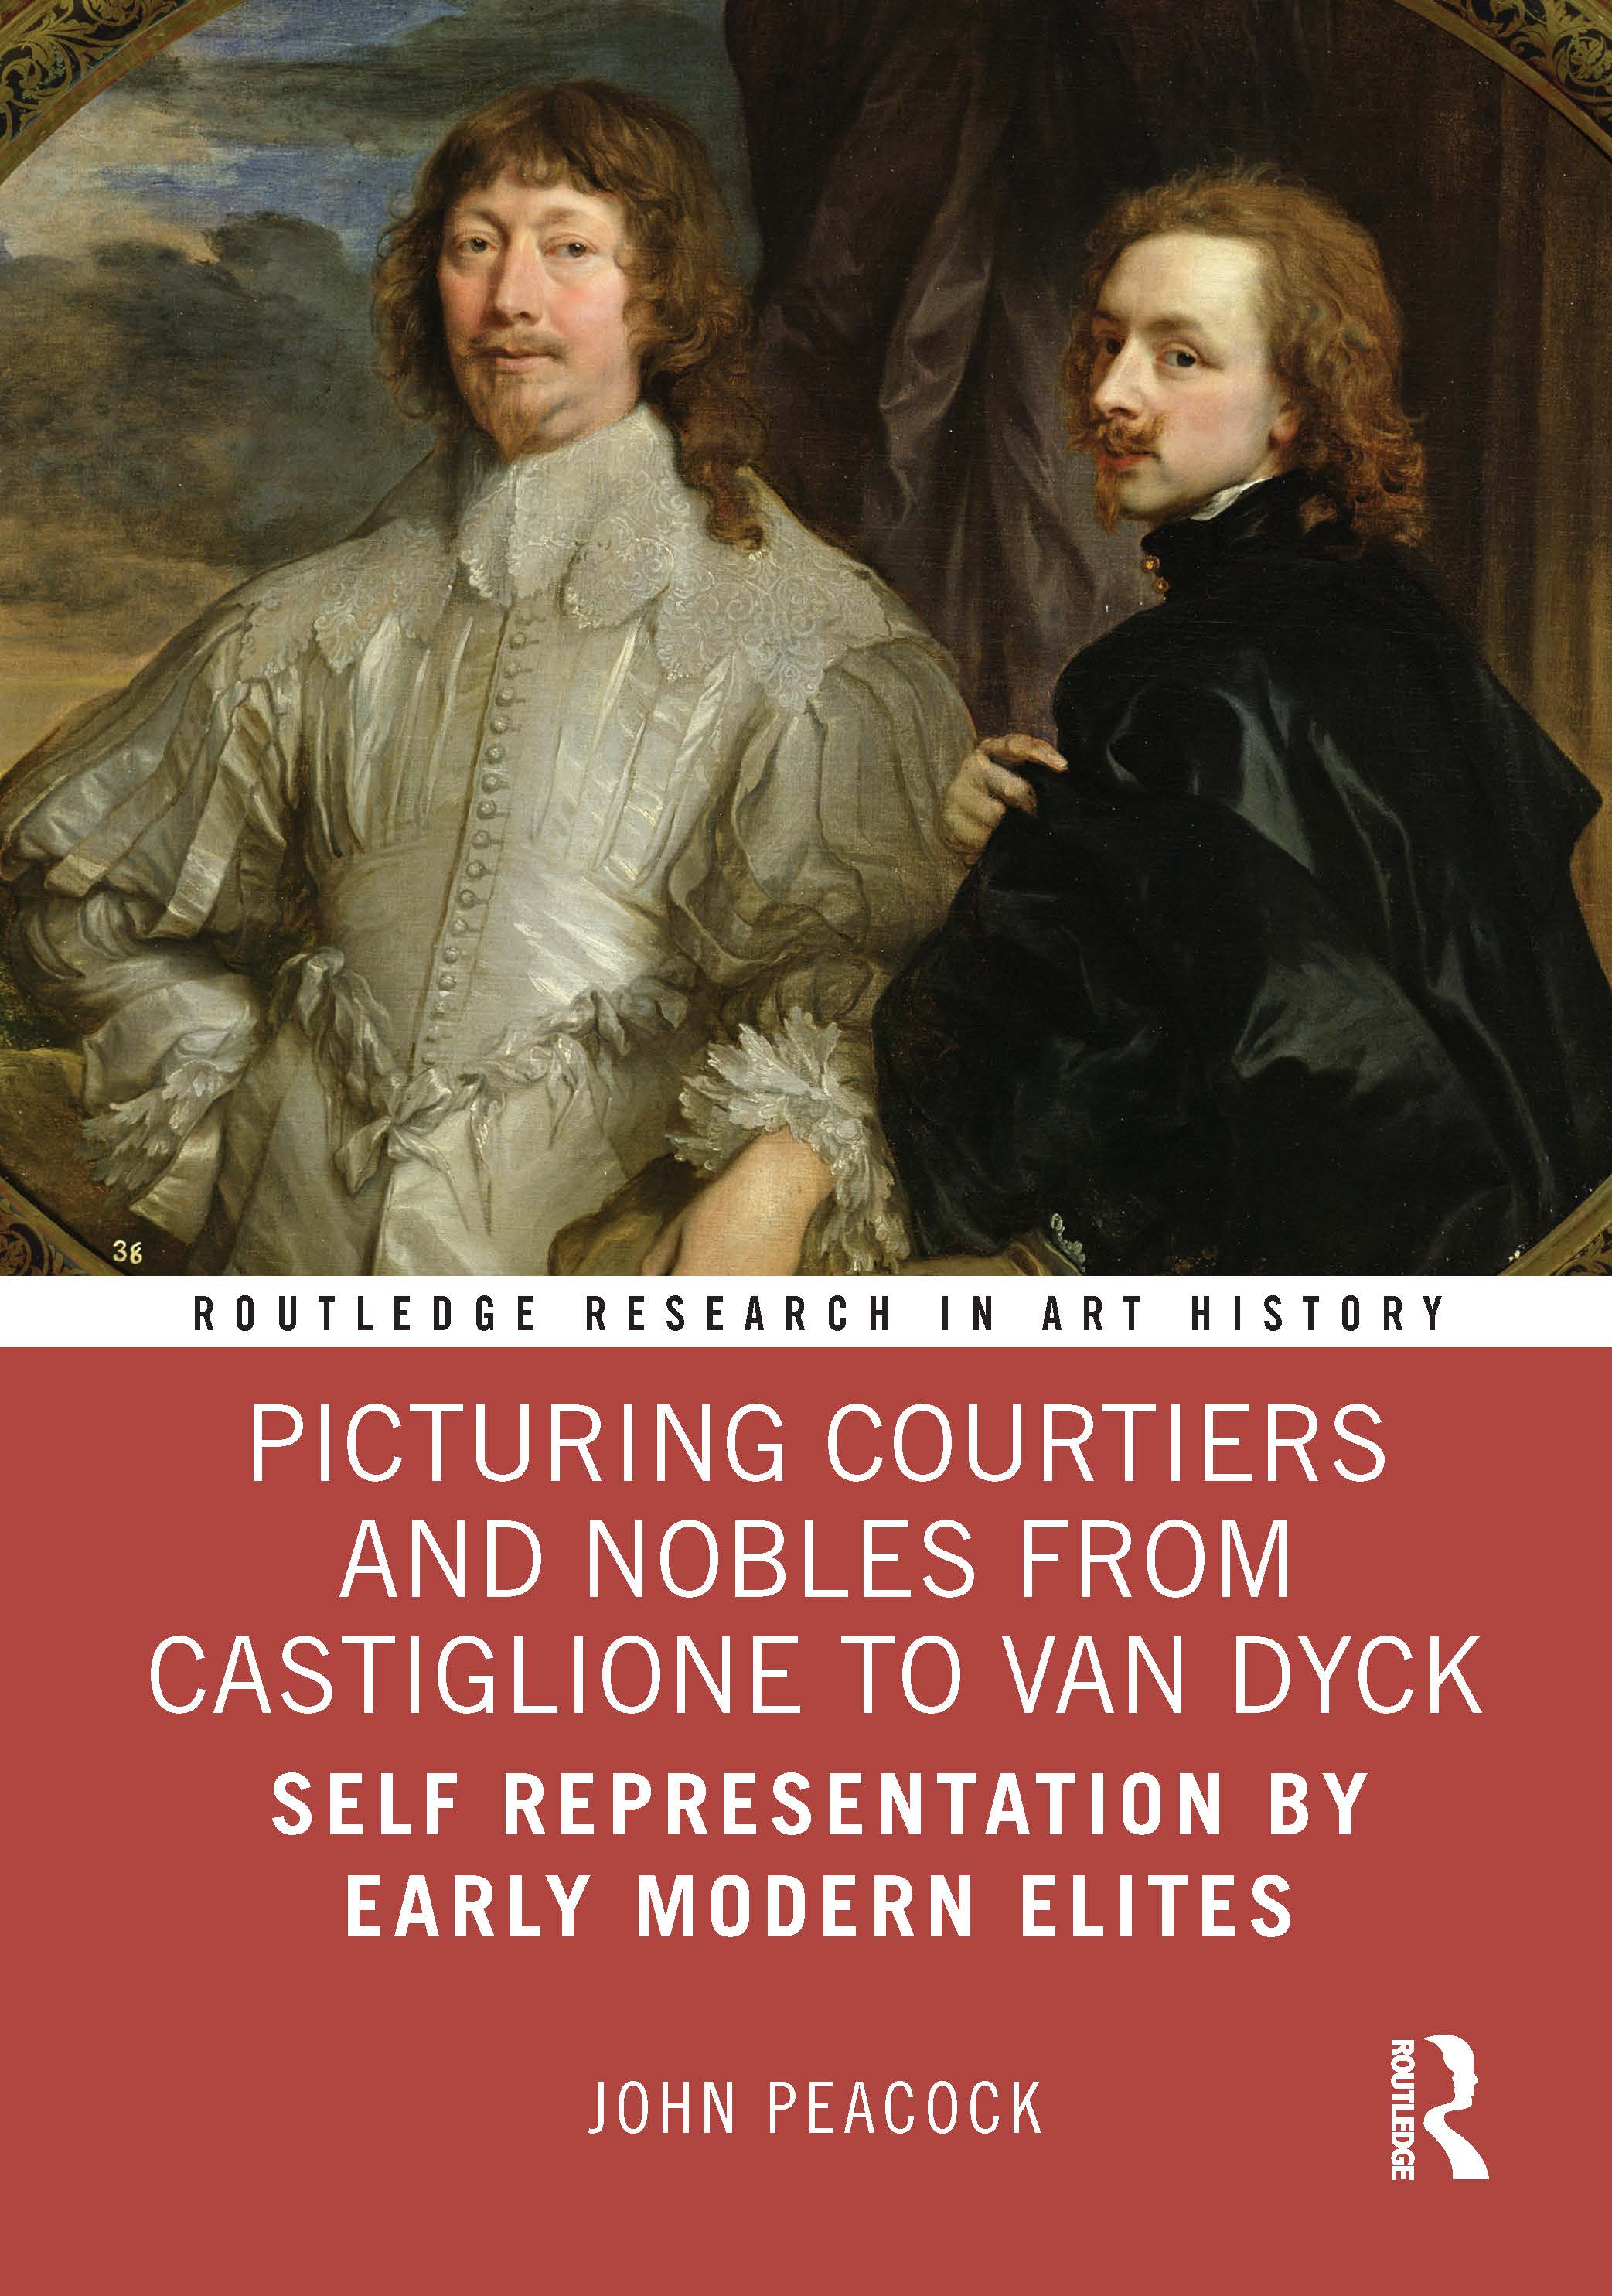 Picturing Courtiers and Nobles from Castiglione to Van Dyck